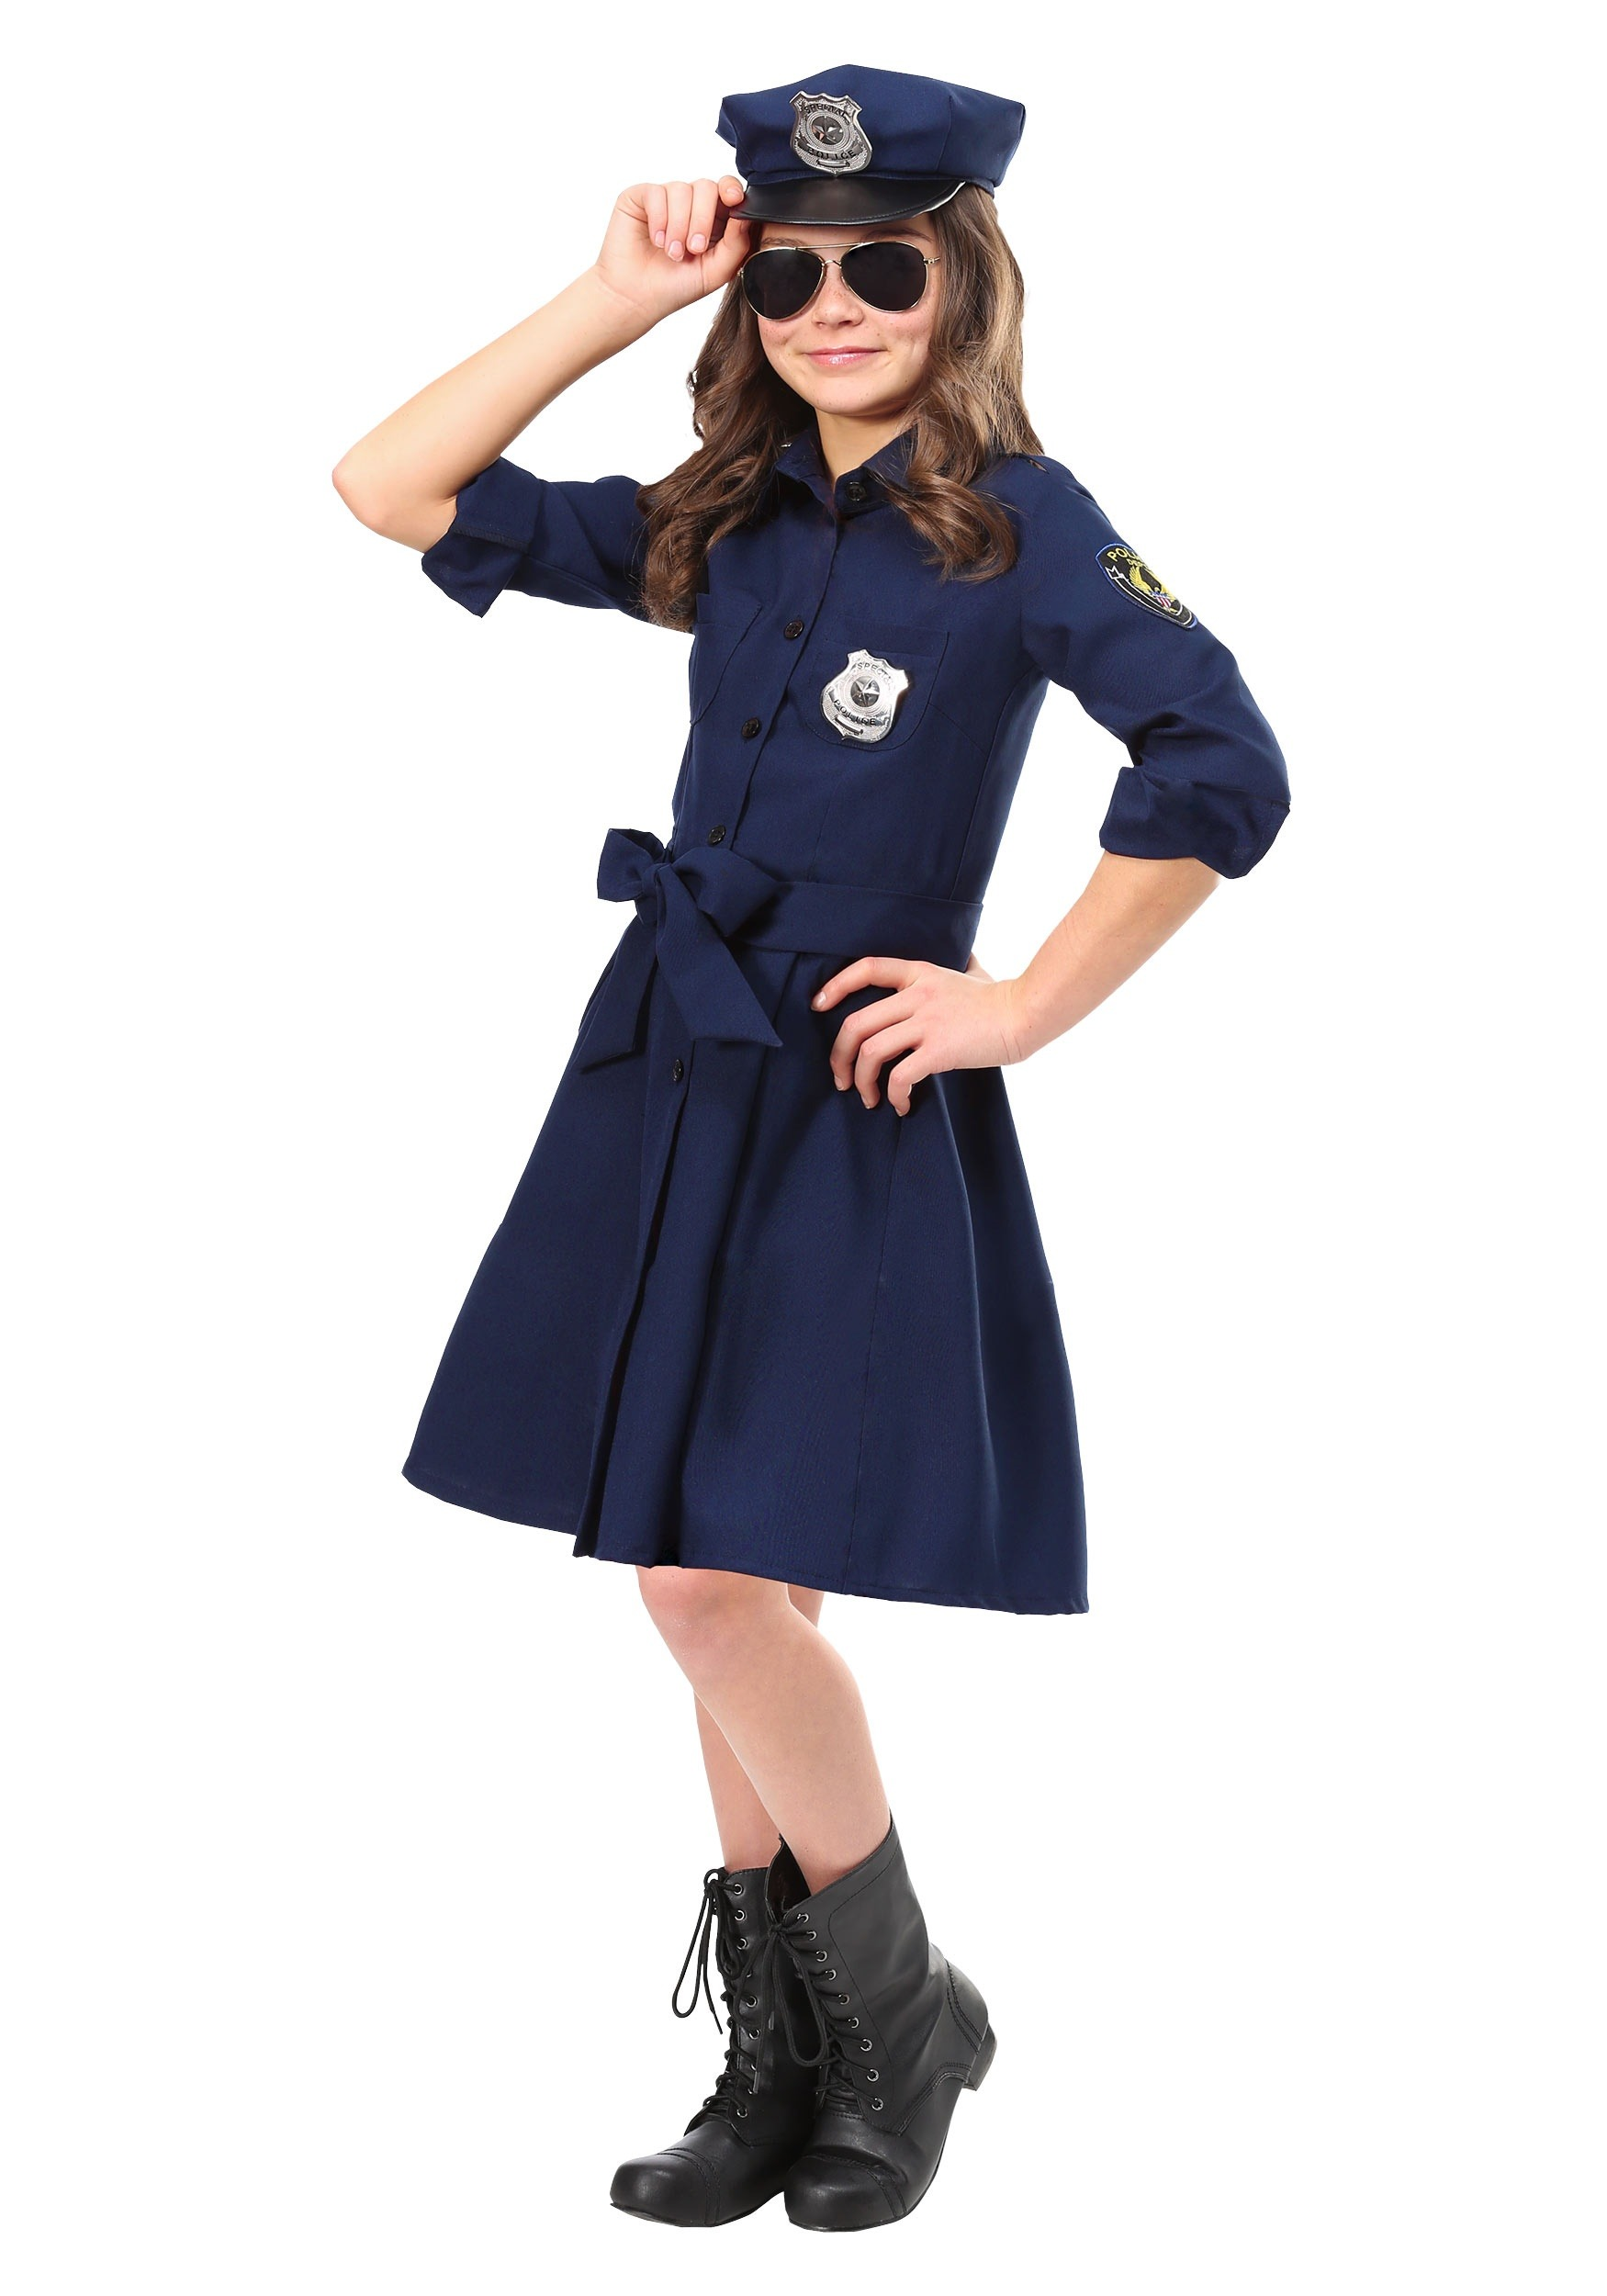 09a8d6b245b Girl's Helpful Police Officer Costume